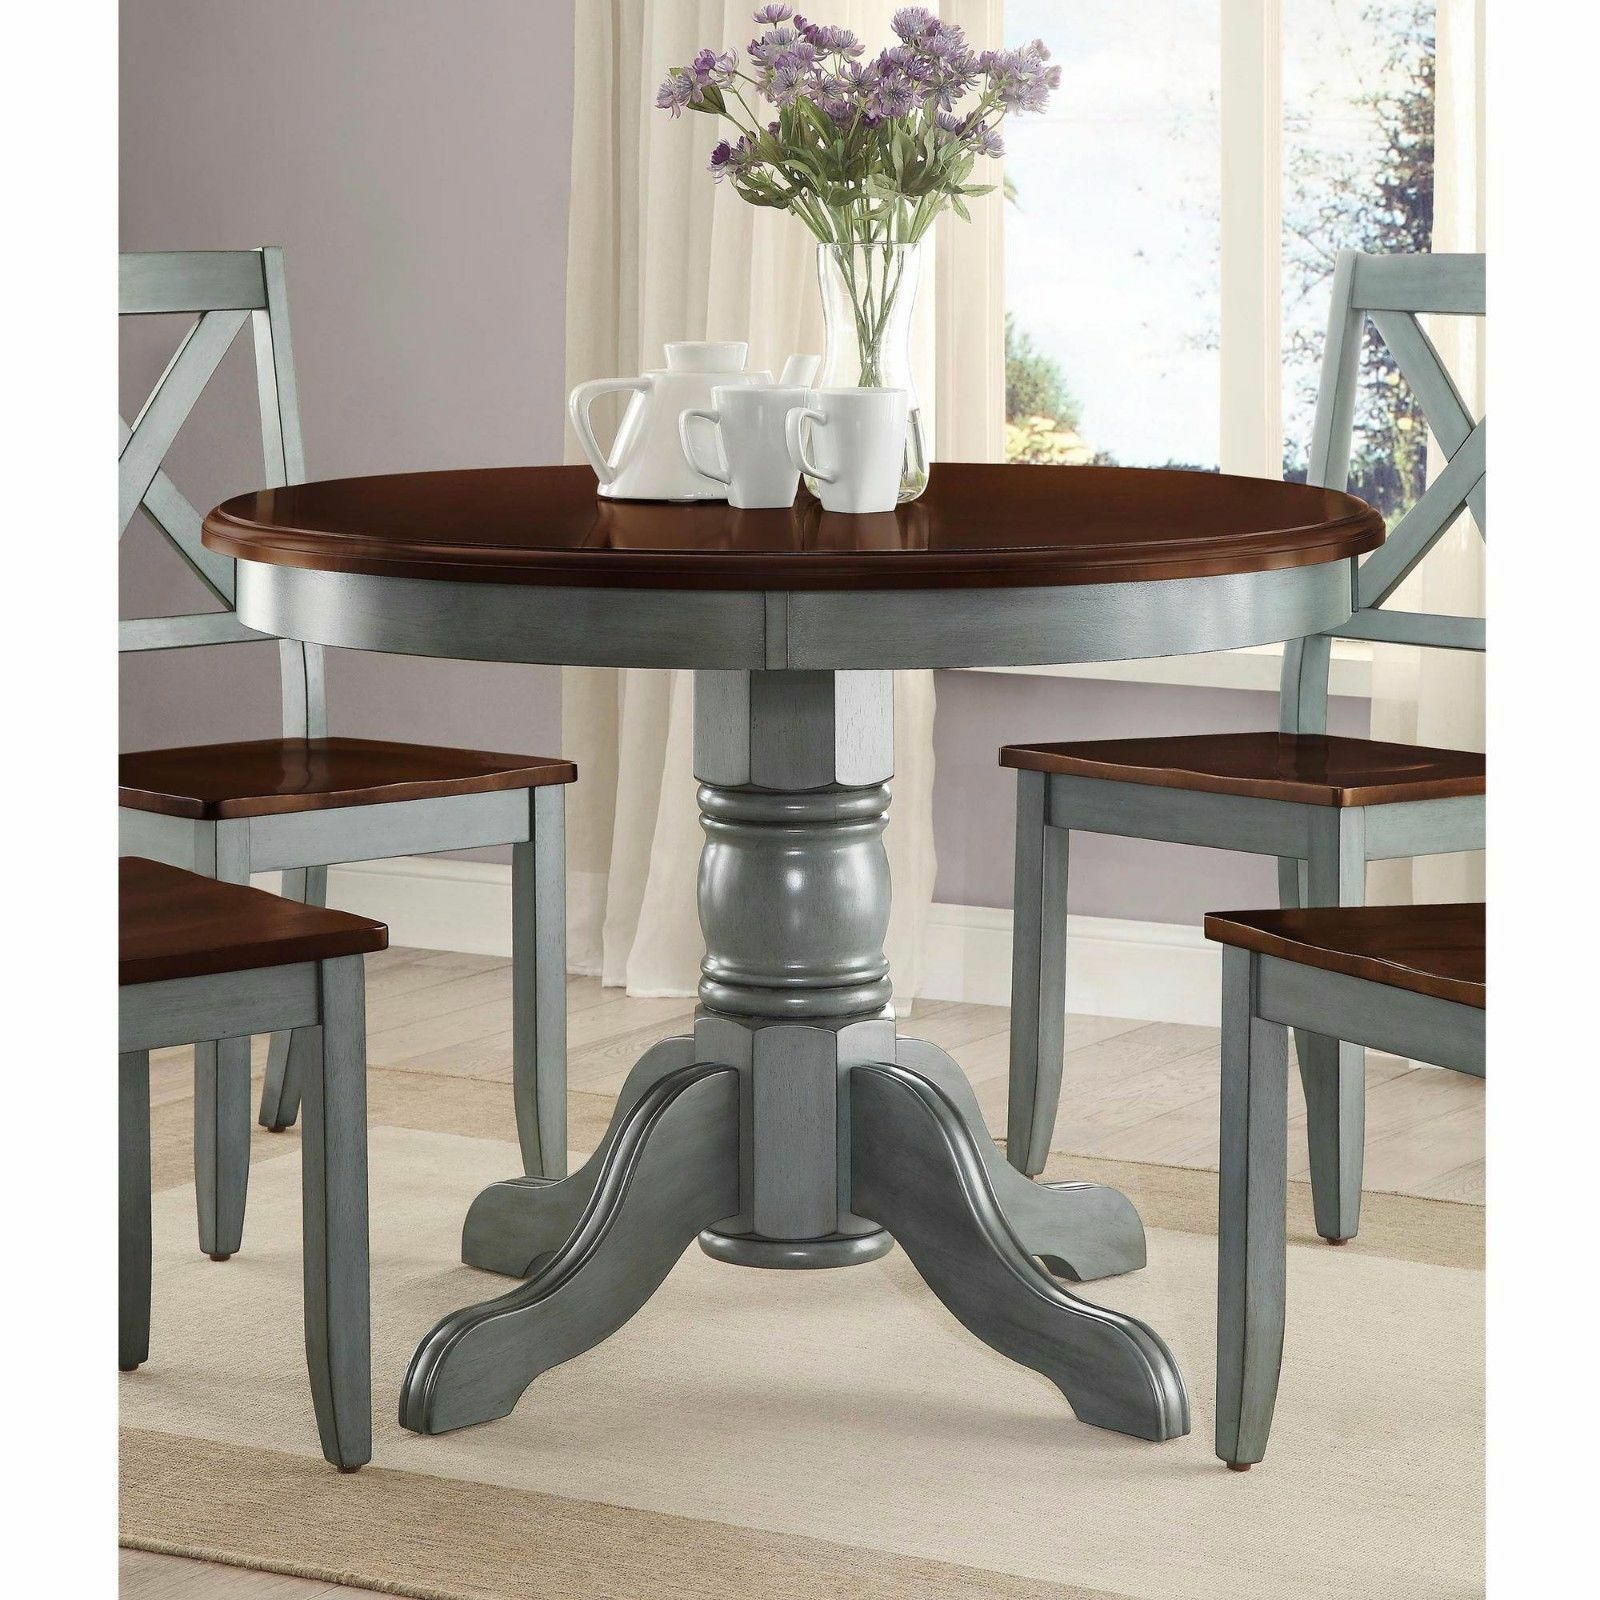 Picture of: Farmhouse Solid Wood Dining Table Round Pedestal Antique Blue Brown Kitchen For Sale Online